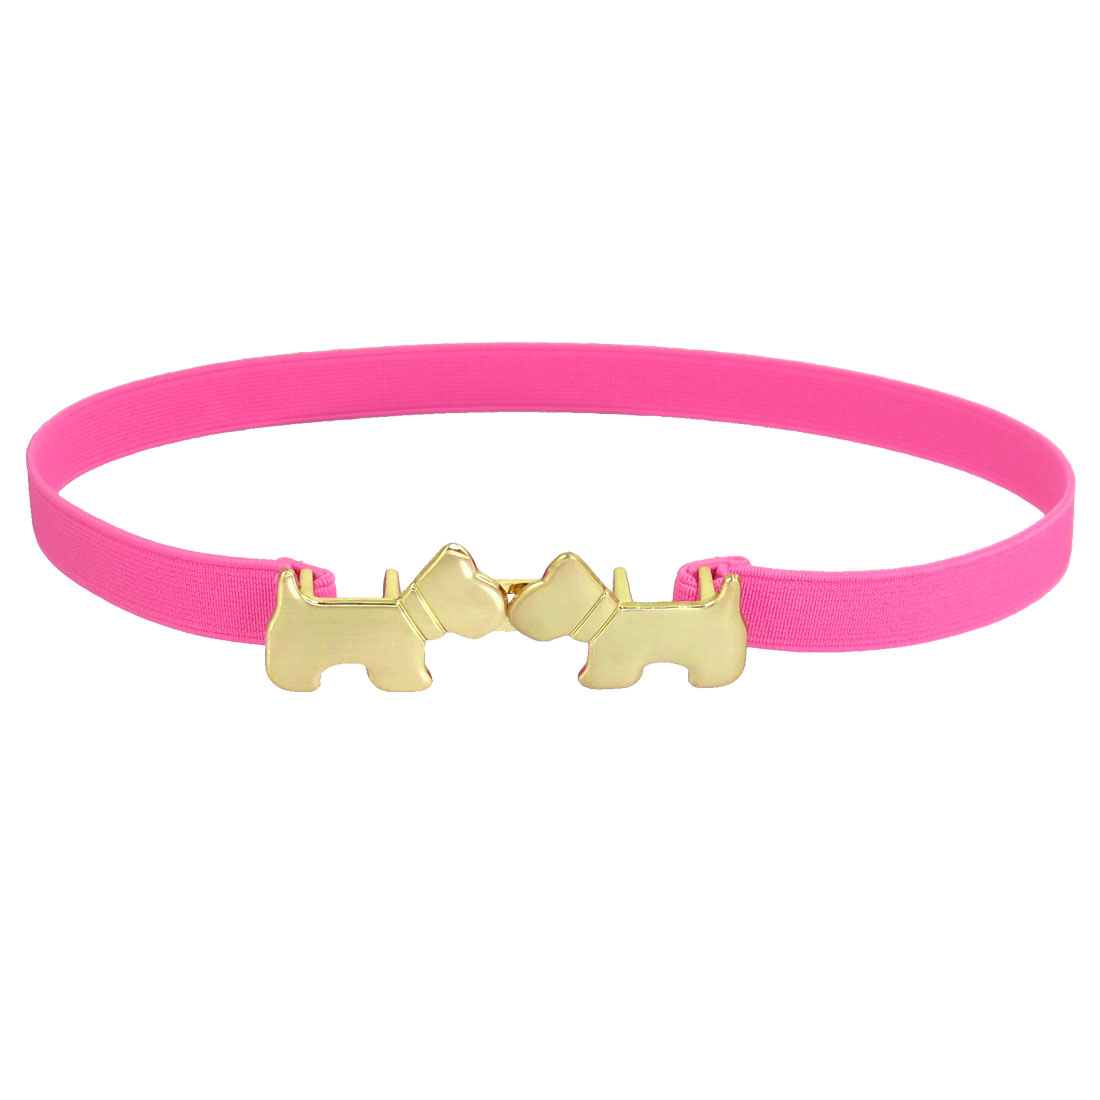 "0.59"" Width Gold Tone Double Pup Shape Buckle Pink Stretchy Waistbelt for Lady"